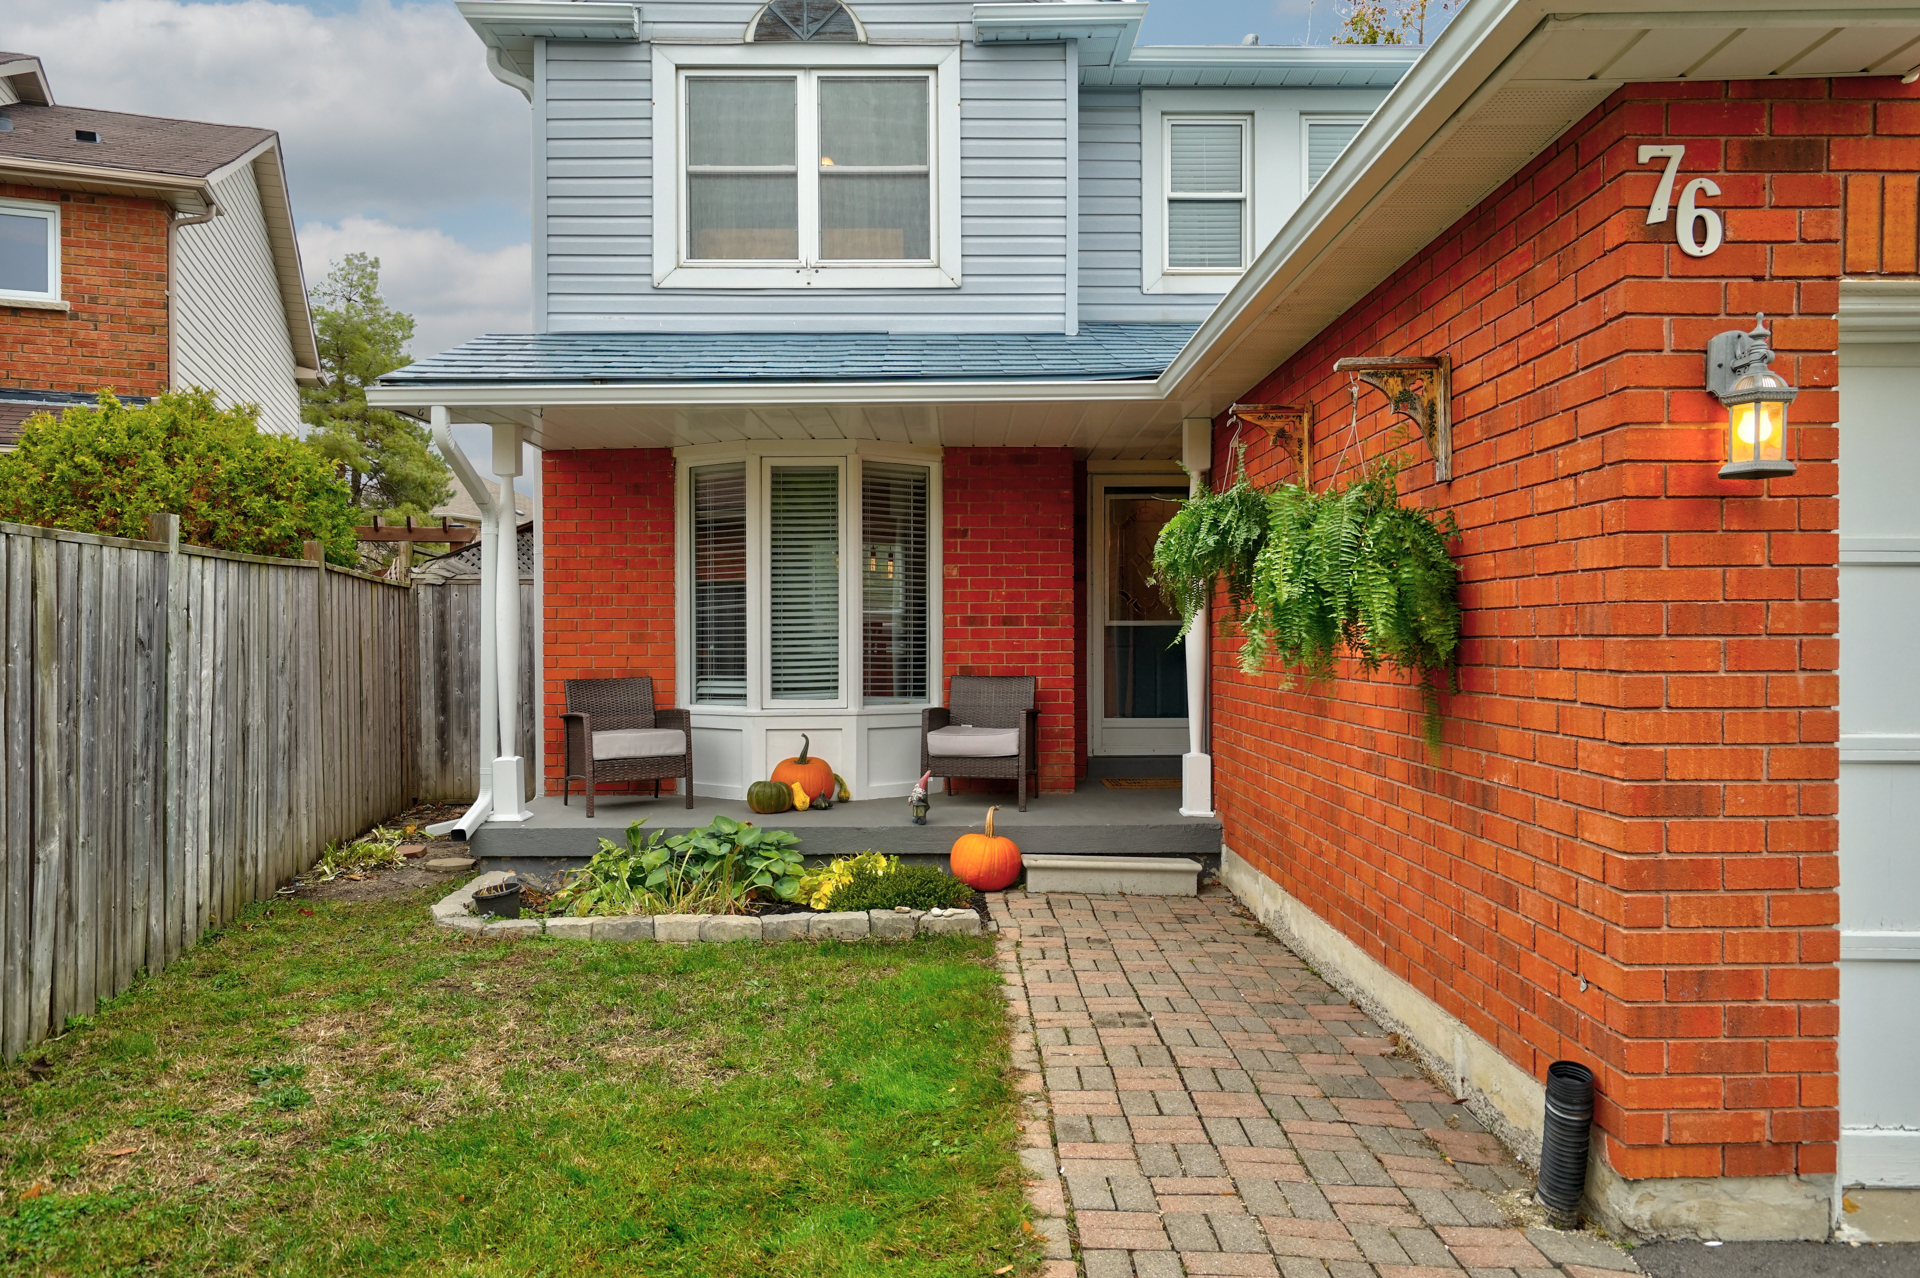 Home for Sale ~ Barrie, ON ~ 76 O'Shaughnessy Cres